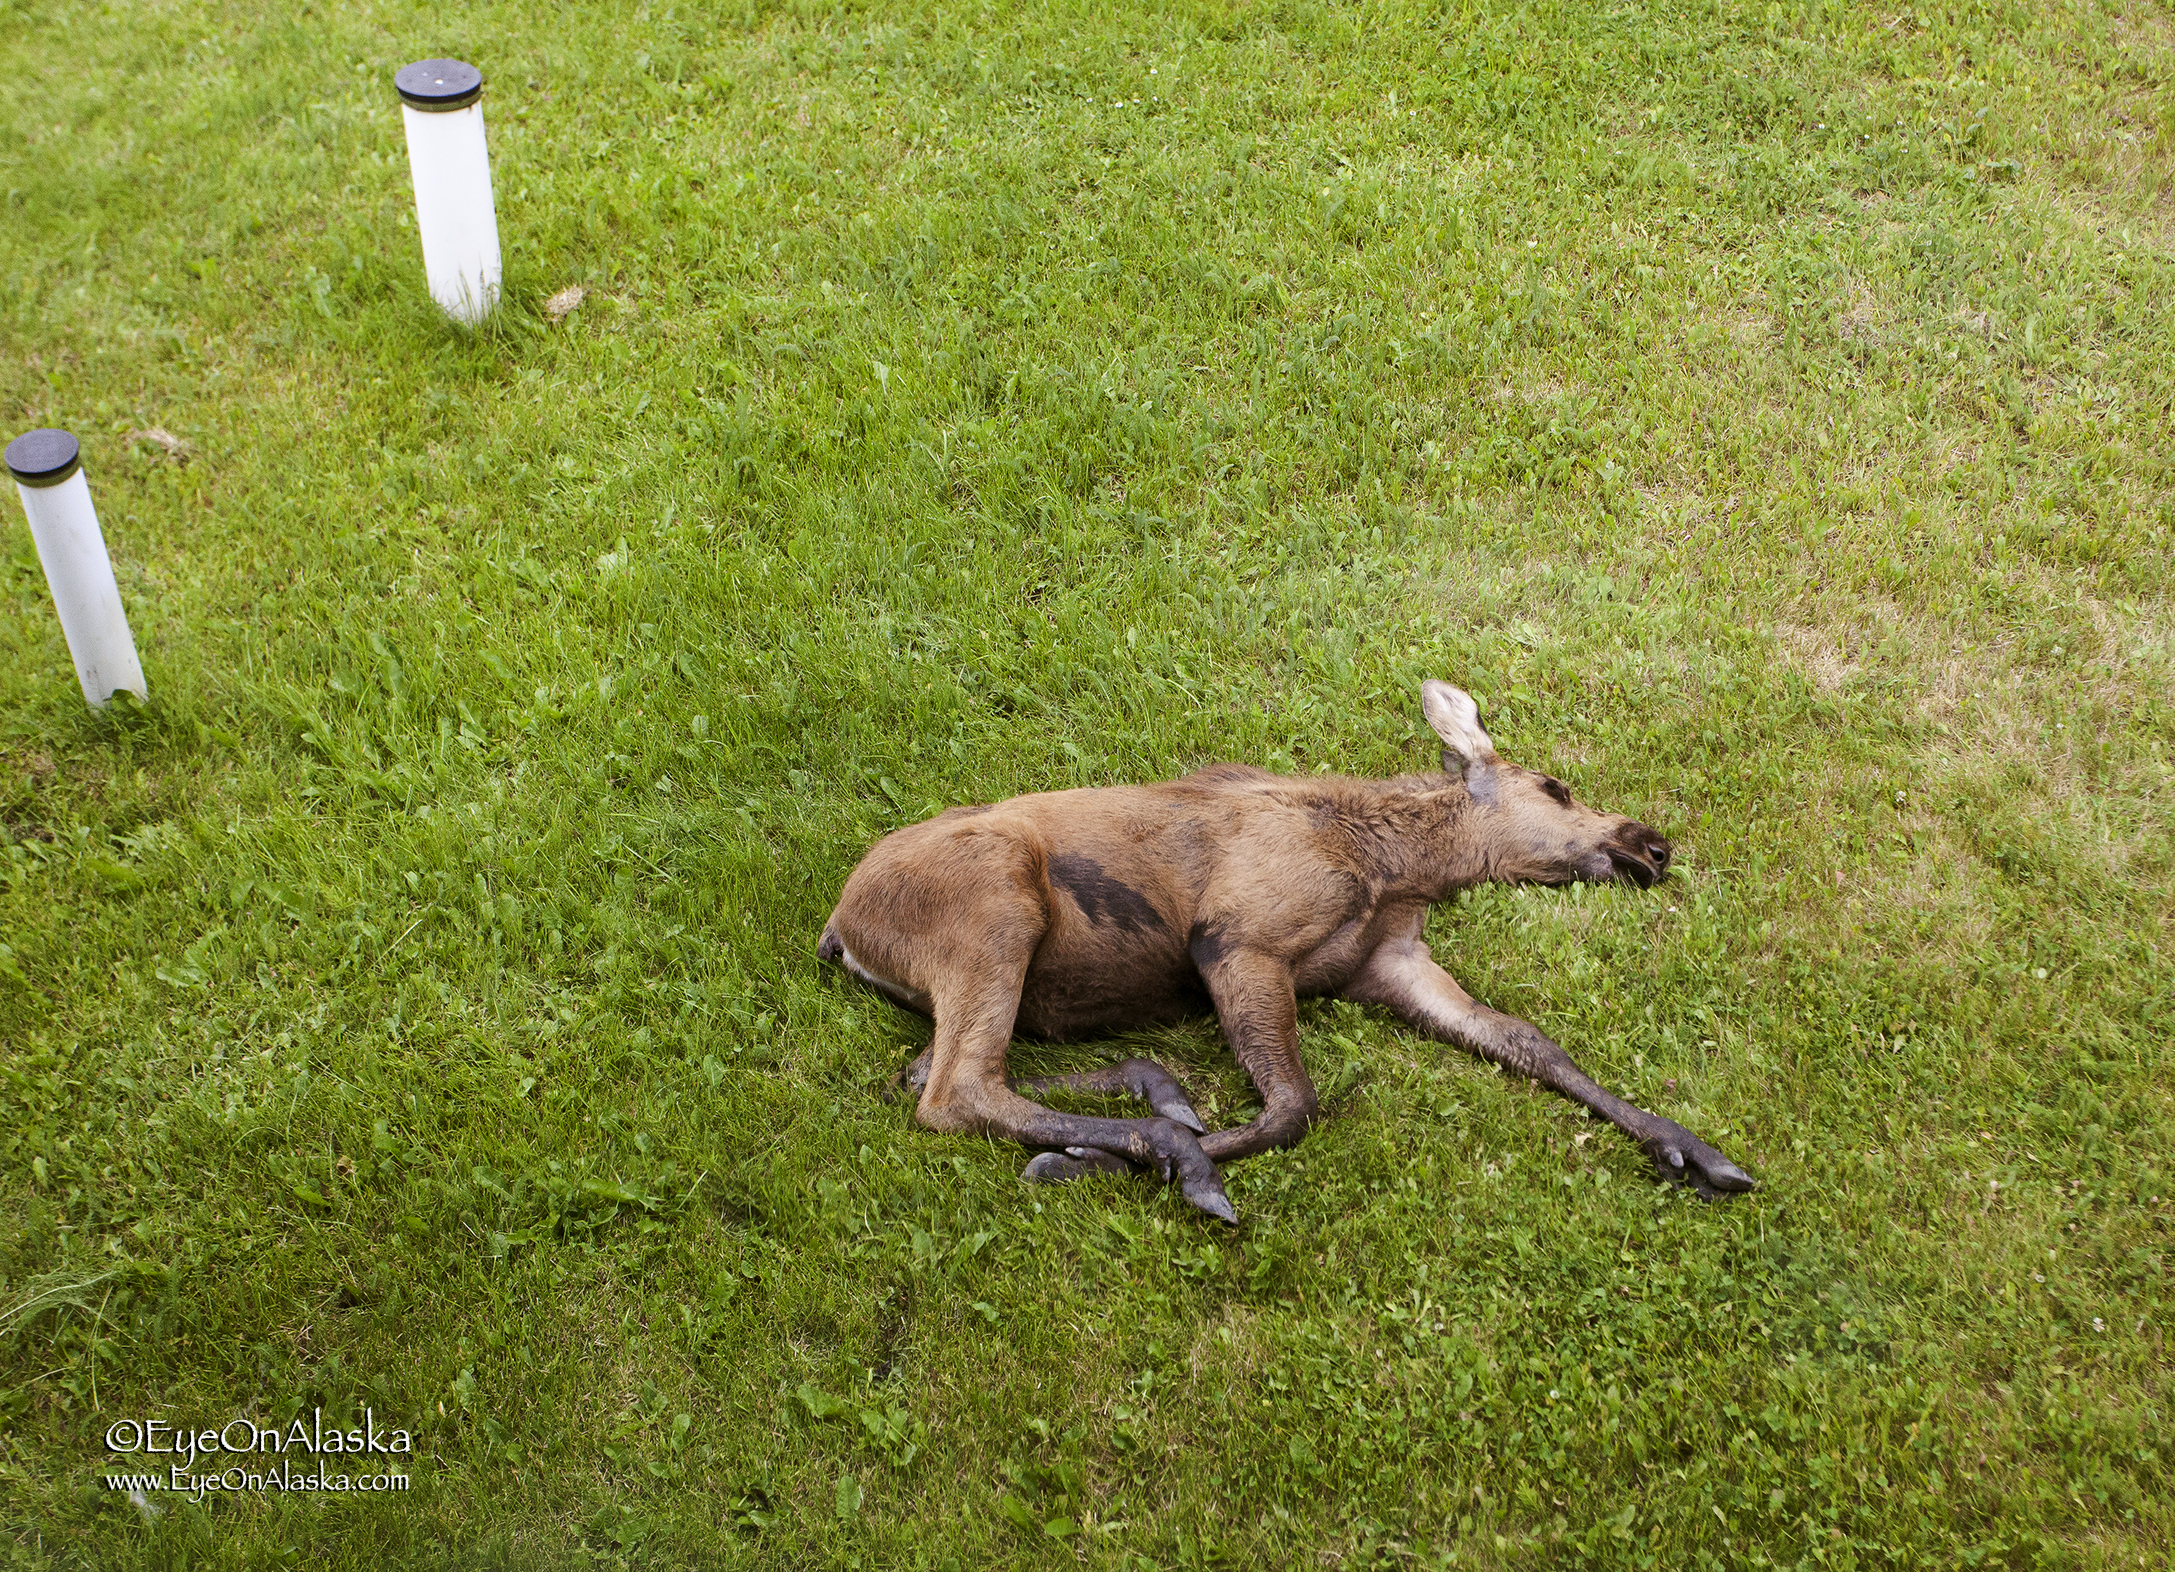 It's tough work being a baby moose. I'm gonna catch some z's.